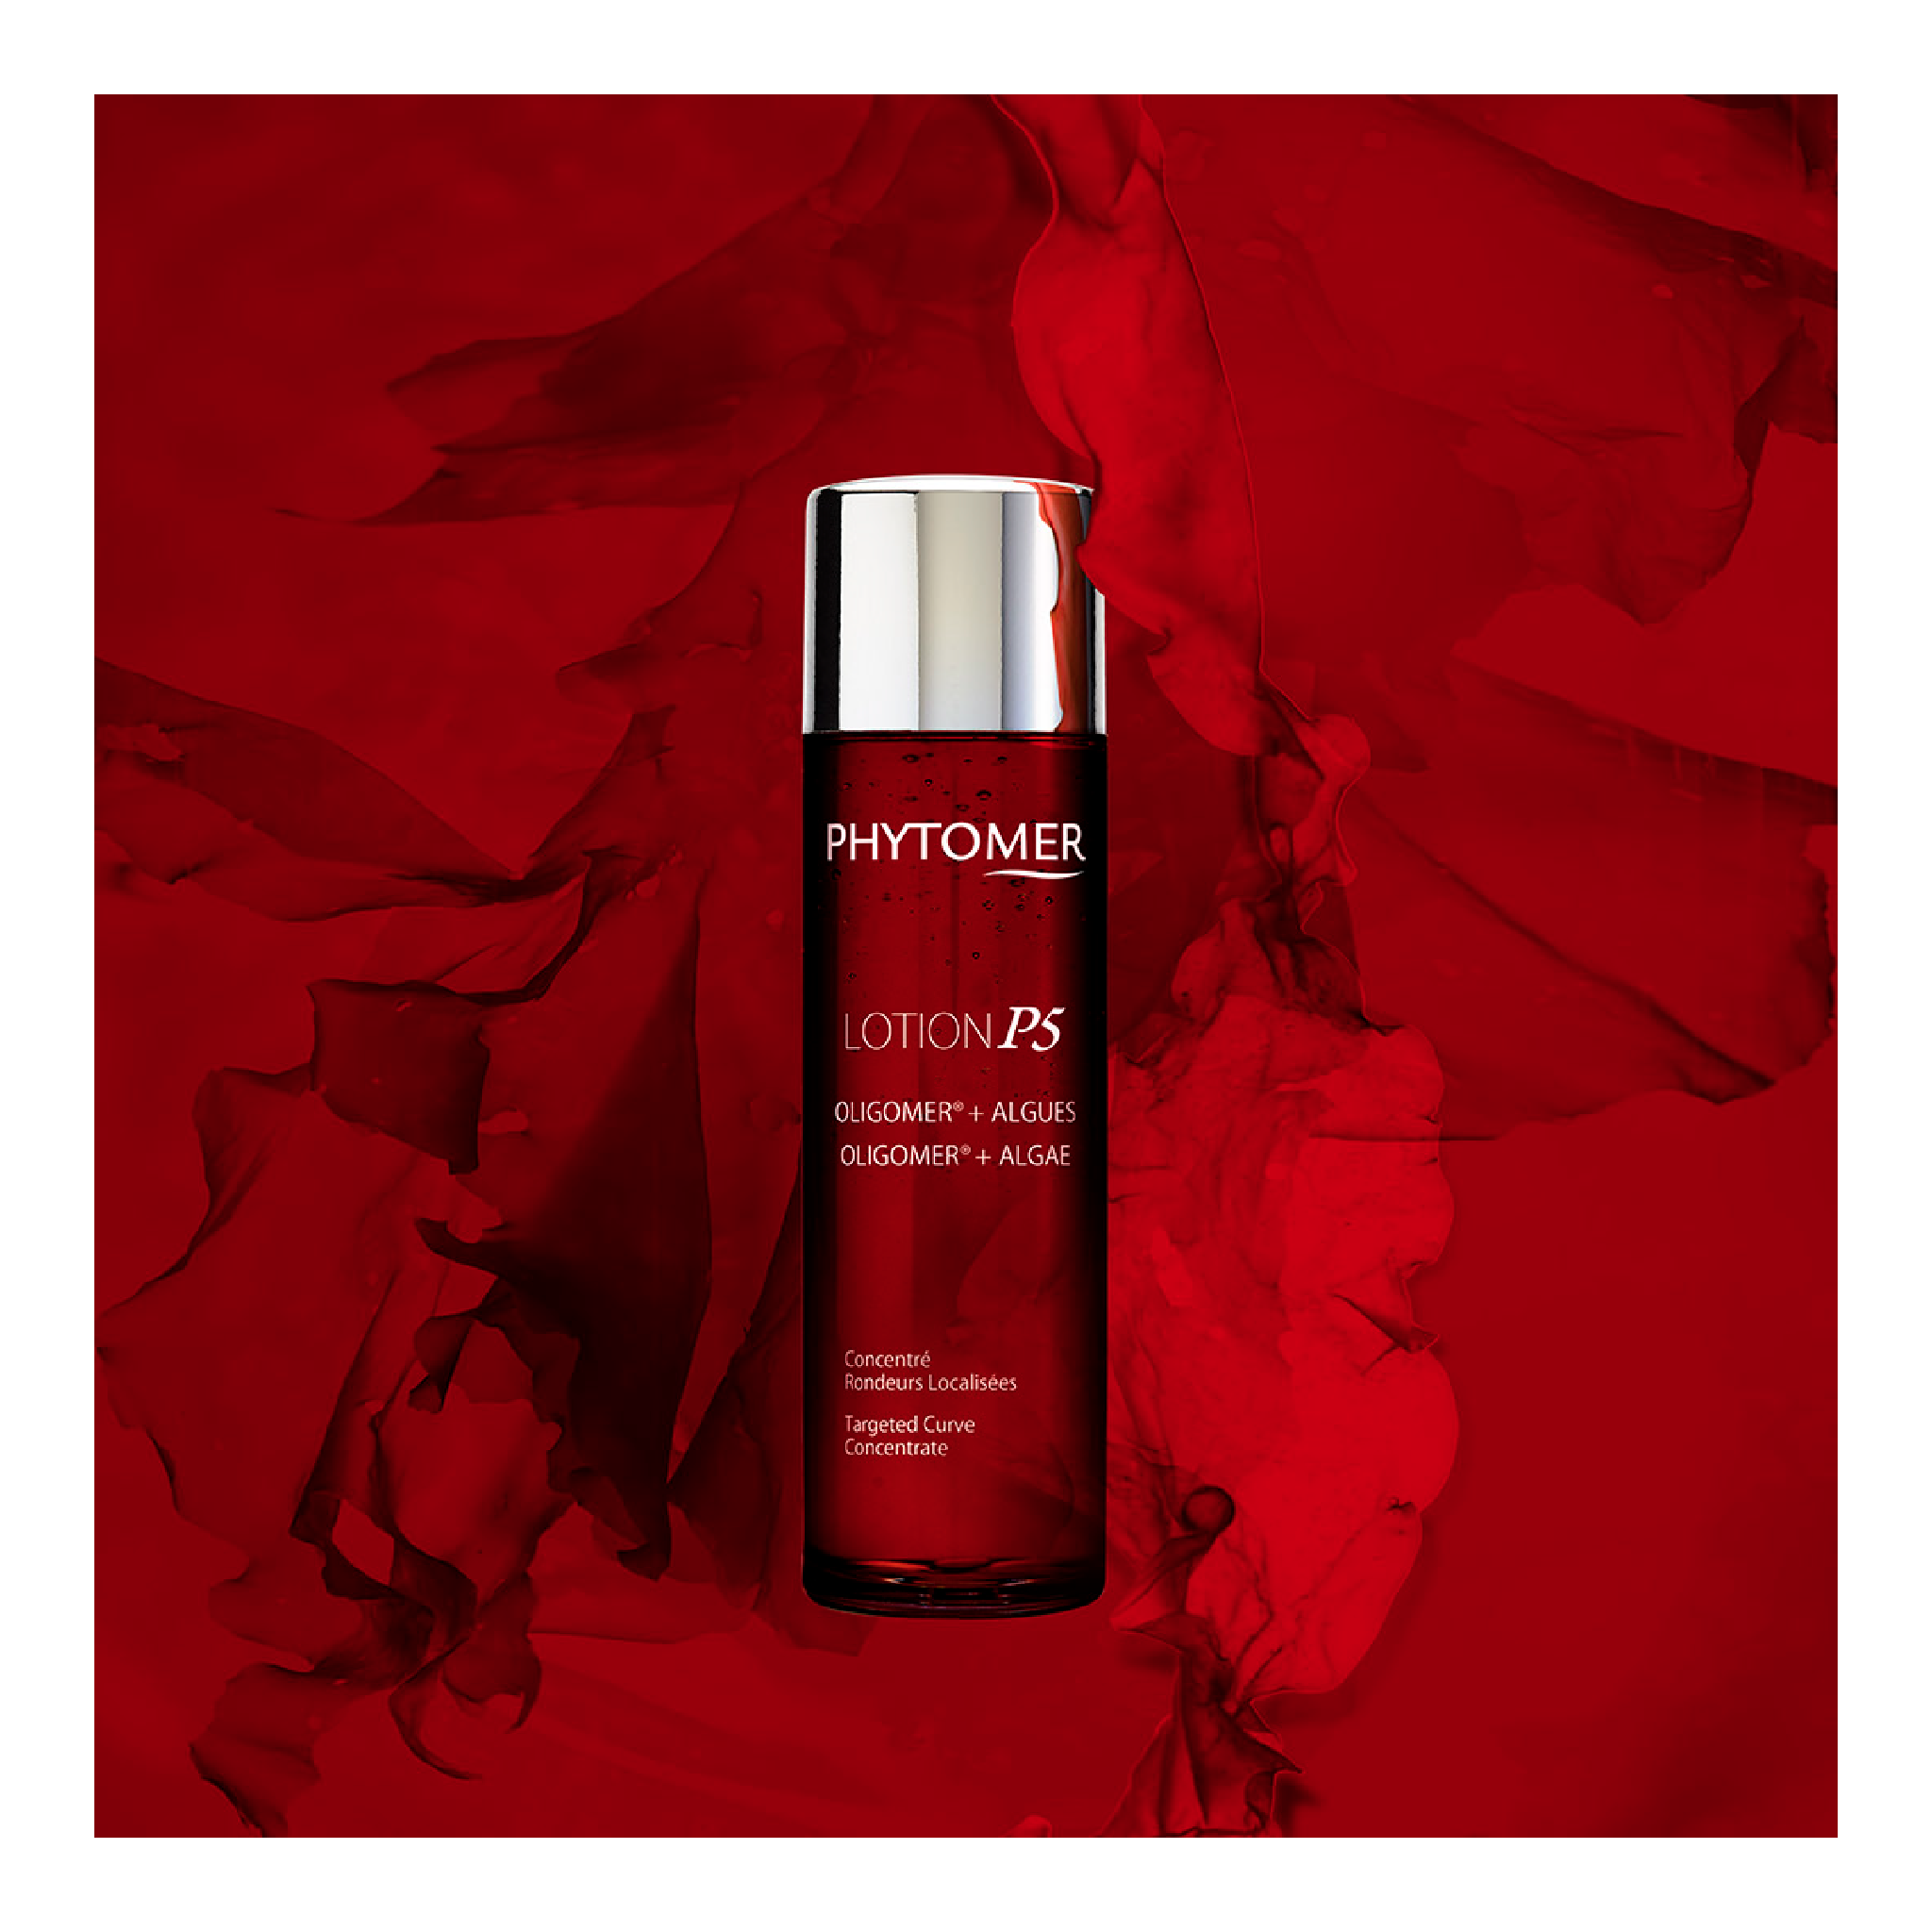 Lotion P5 Targeted Curve Concentrate